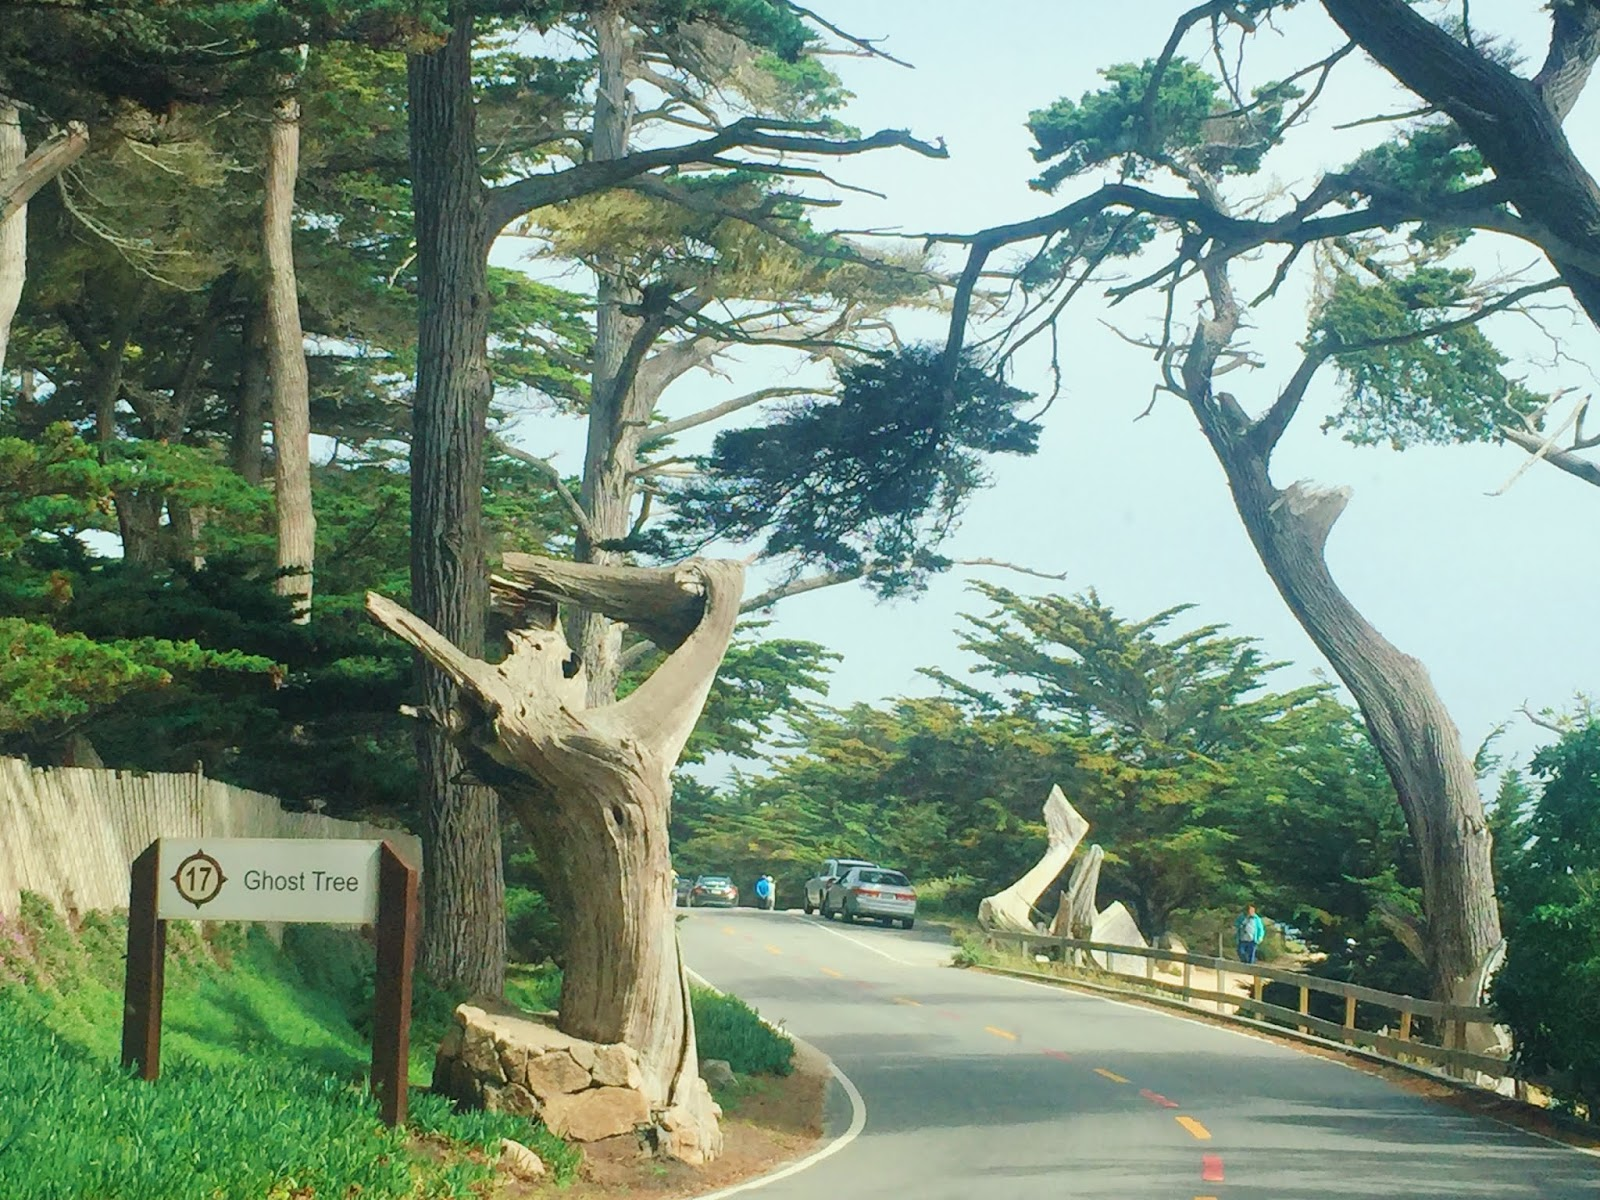 17-Mile Drive Carmel-by-the-sea - San Francisco Travel Guide - Vegan SFO